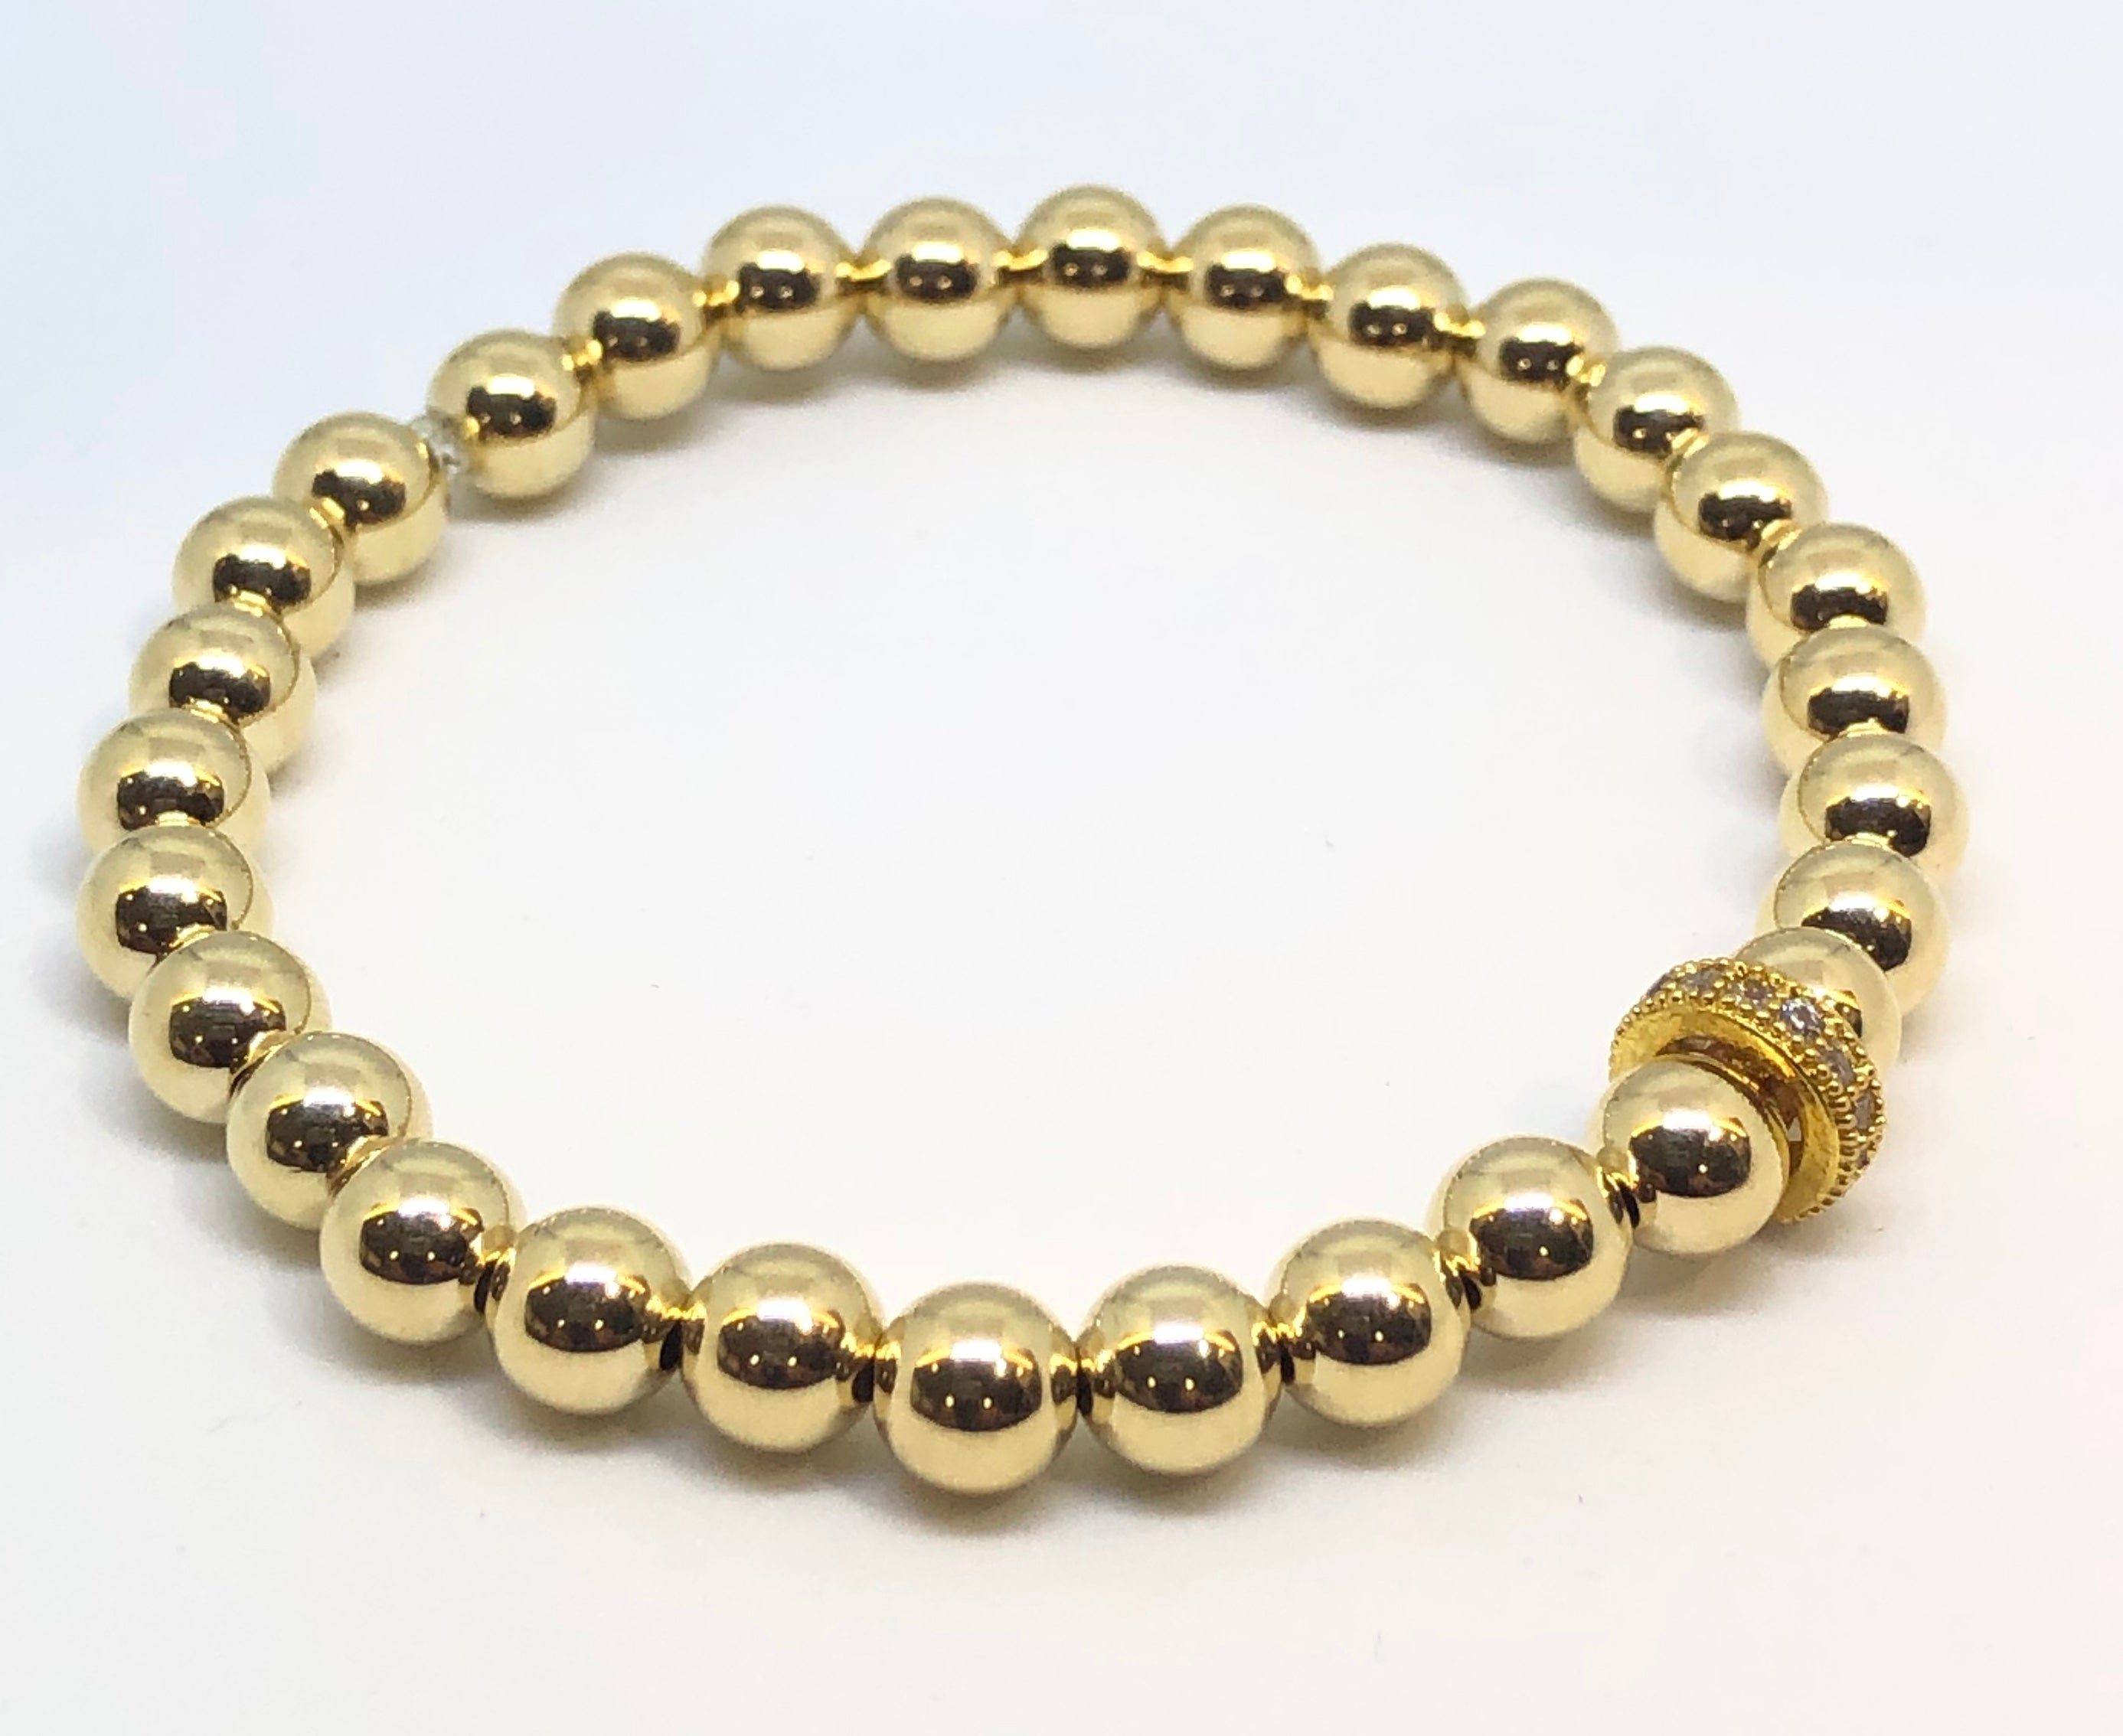 6mm 14kt Gold Filled Bead Bracelet with 10mm CZ Jeweled Wheel